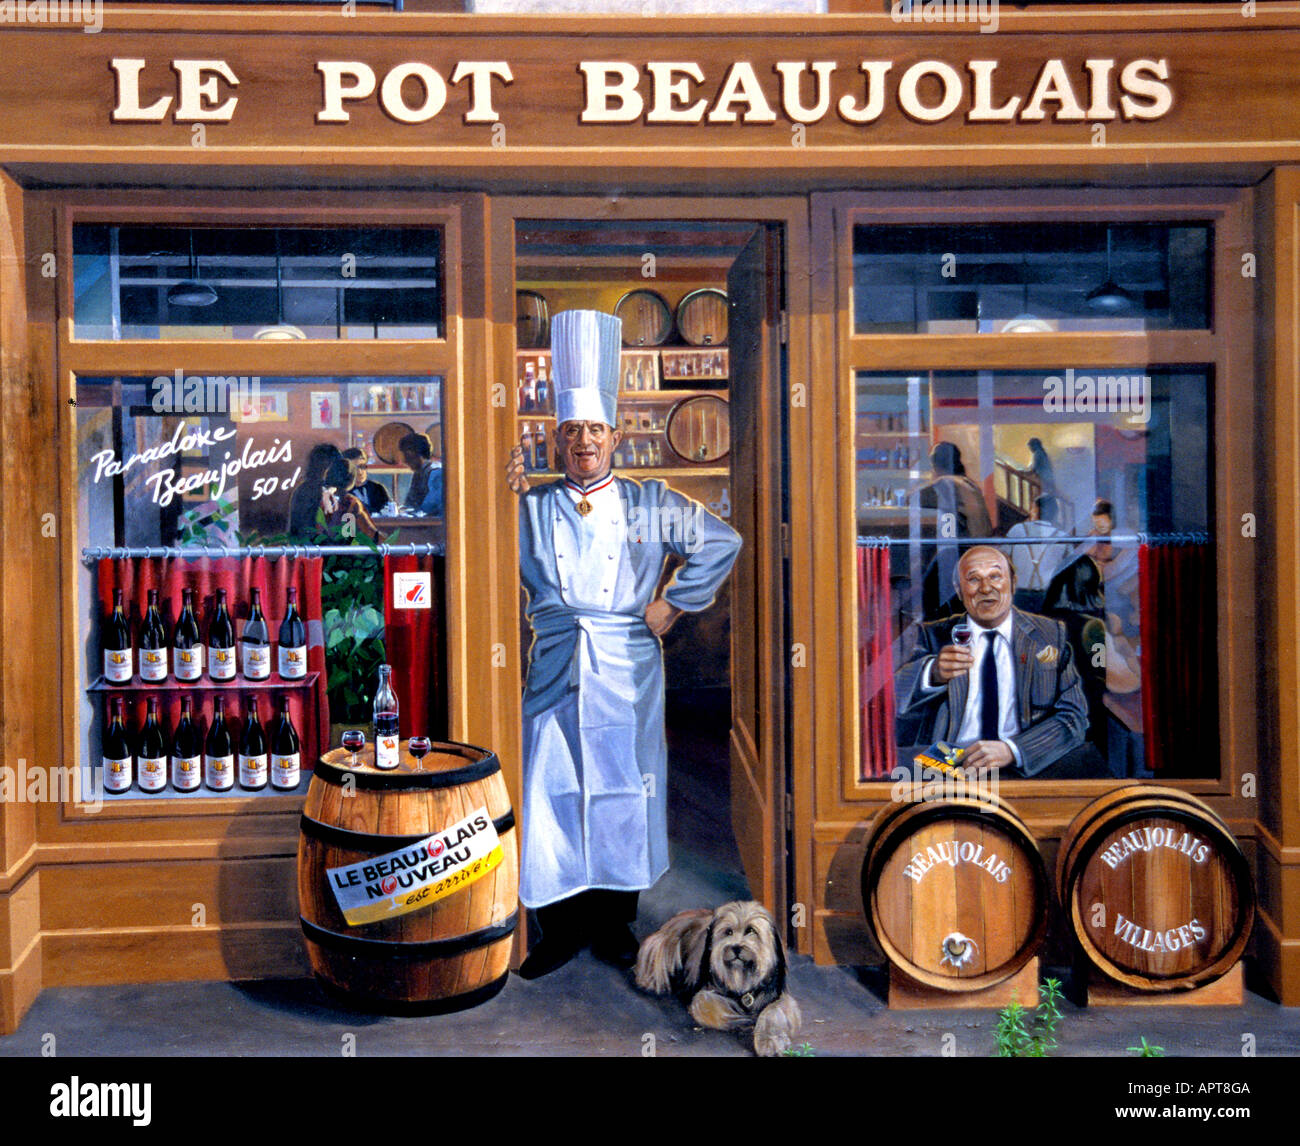 Paul Bocuse  Frederic Dard in the window French writer  Le Pot Beaujolais Lyon France trompe l'oeil painted walls Stock Photo